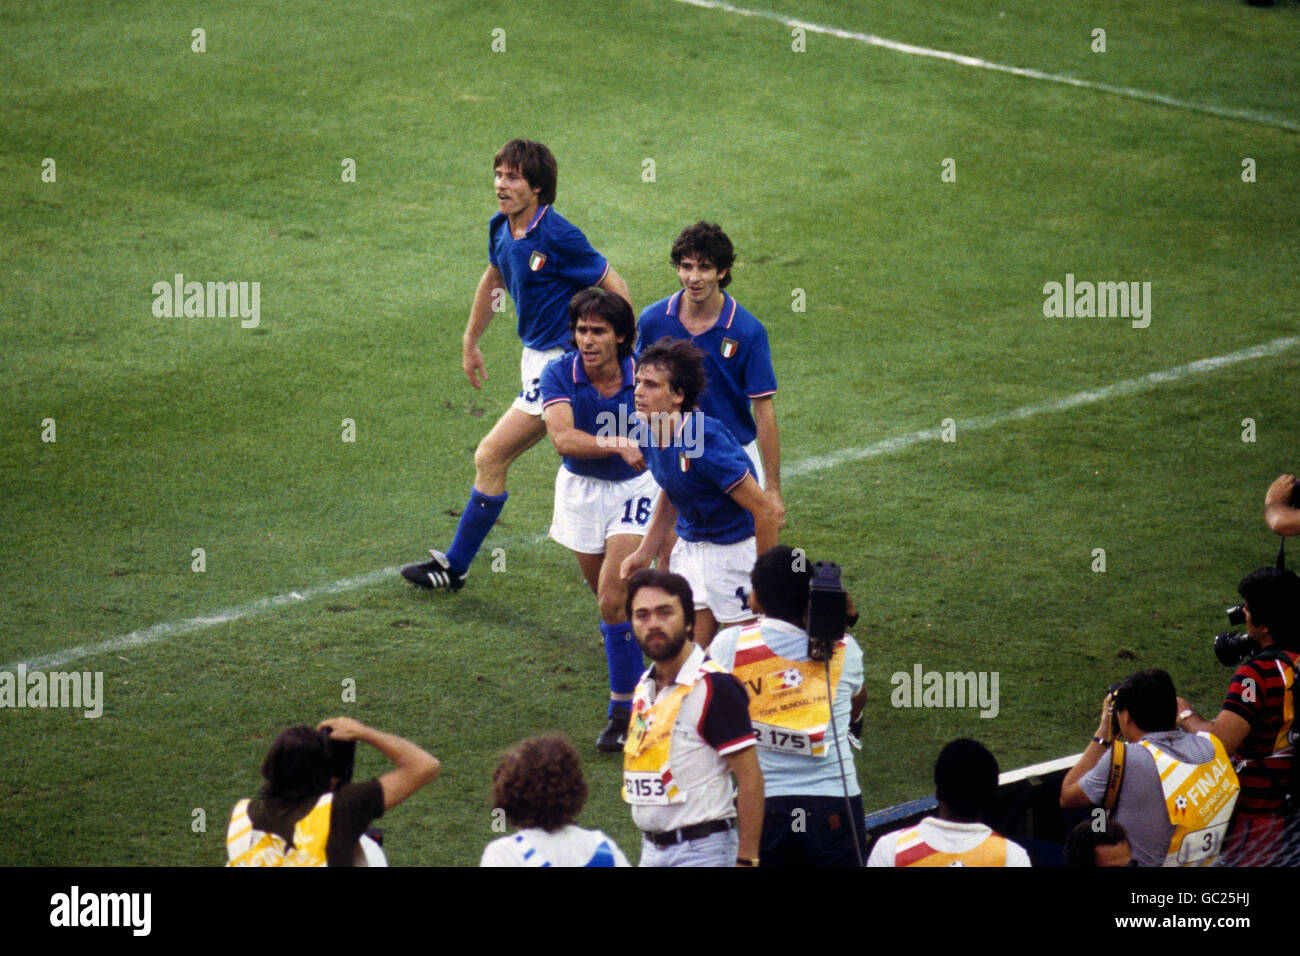 Rossi 1982 photos rossi 1982 images alamy - Finale coupe du monde 1982 ...